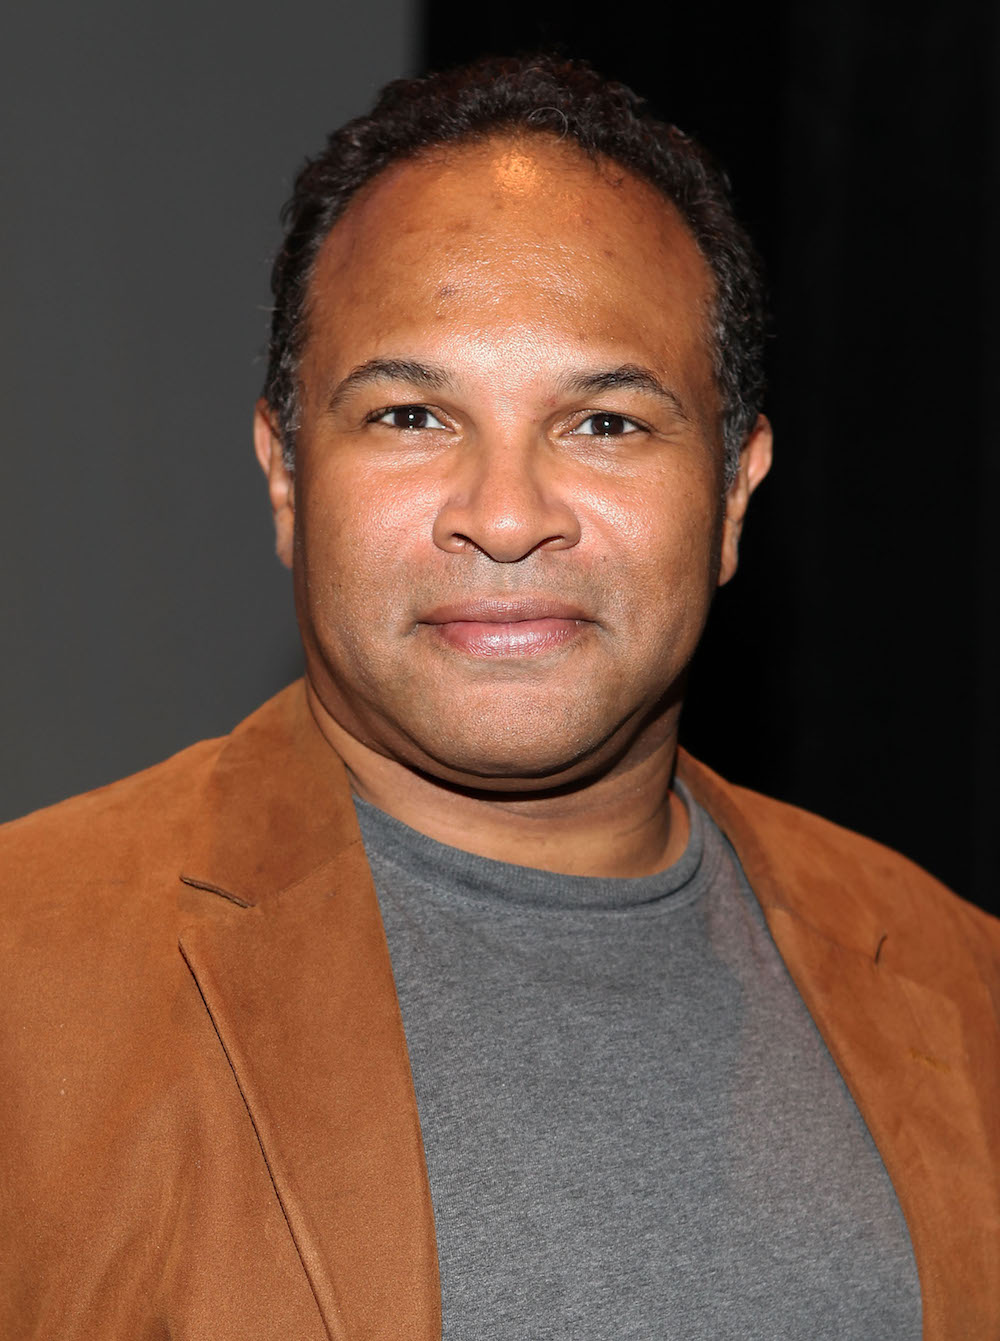 Geoffrey Owens on Being Shamed for Working at Trader Joe's: 'No One Should Feel Sorry for Me'